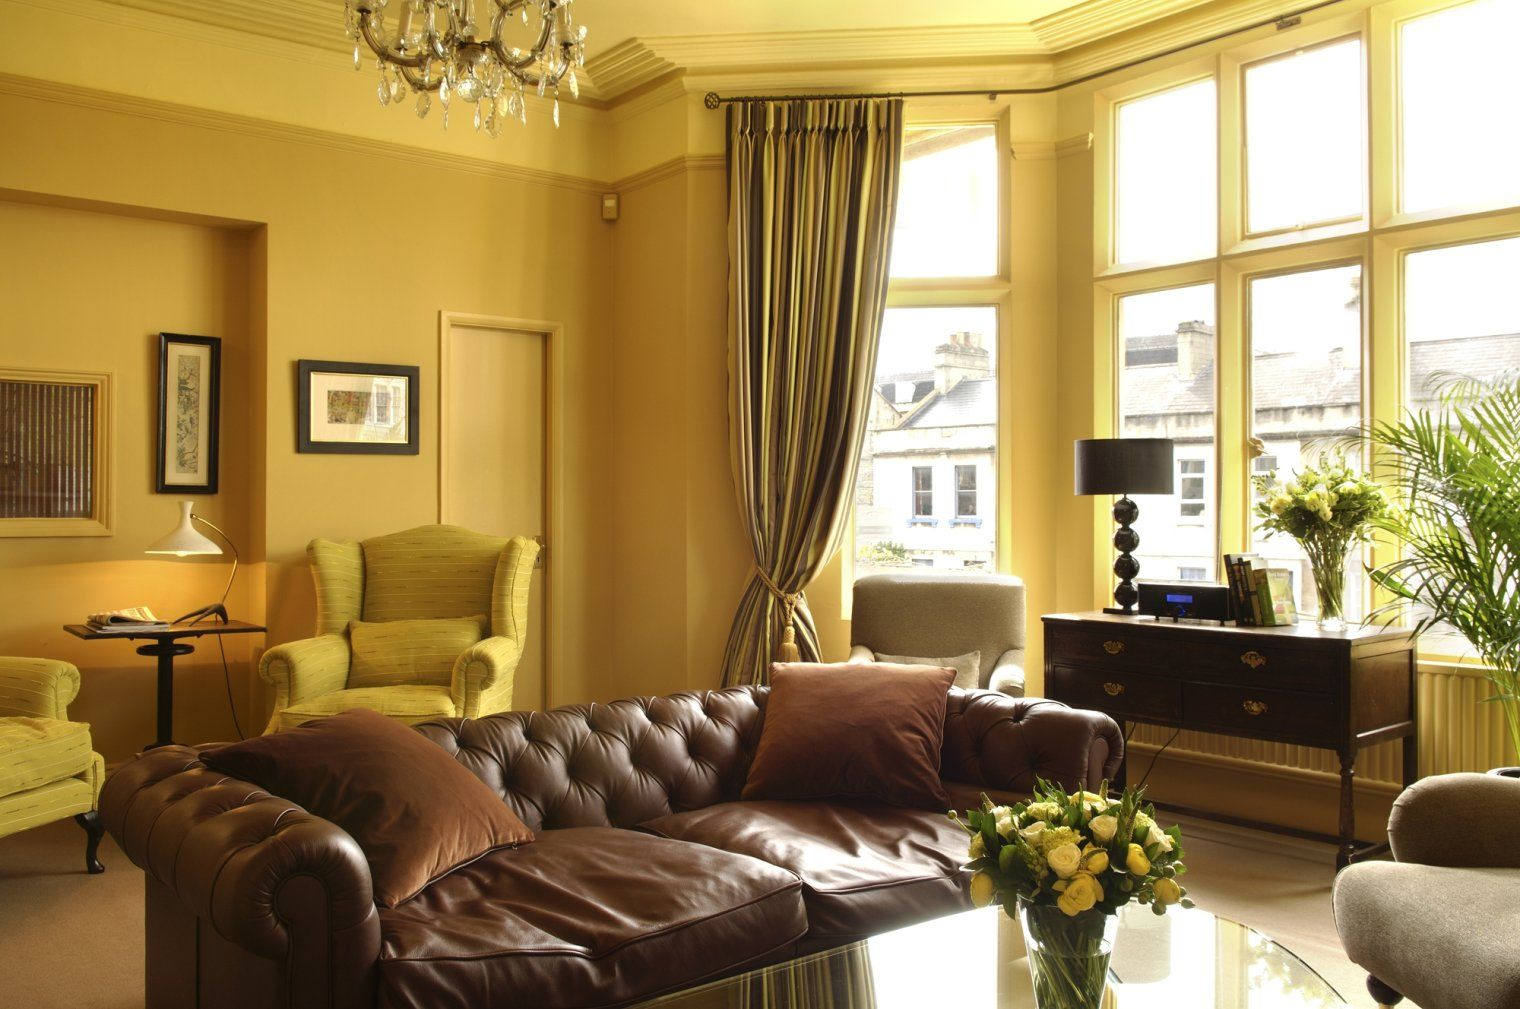 decorating ideas living rooms yellow walls - Google Search | front ...